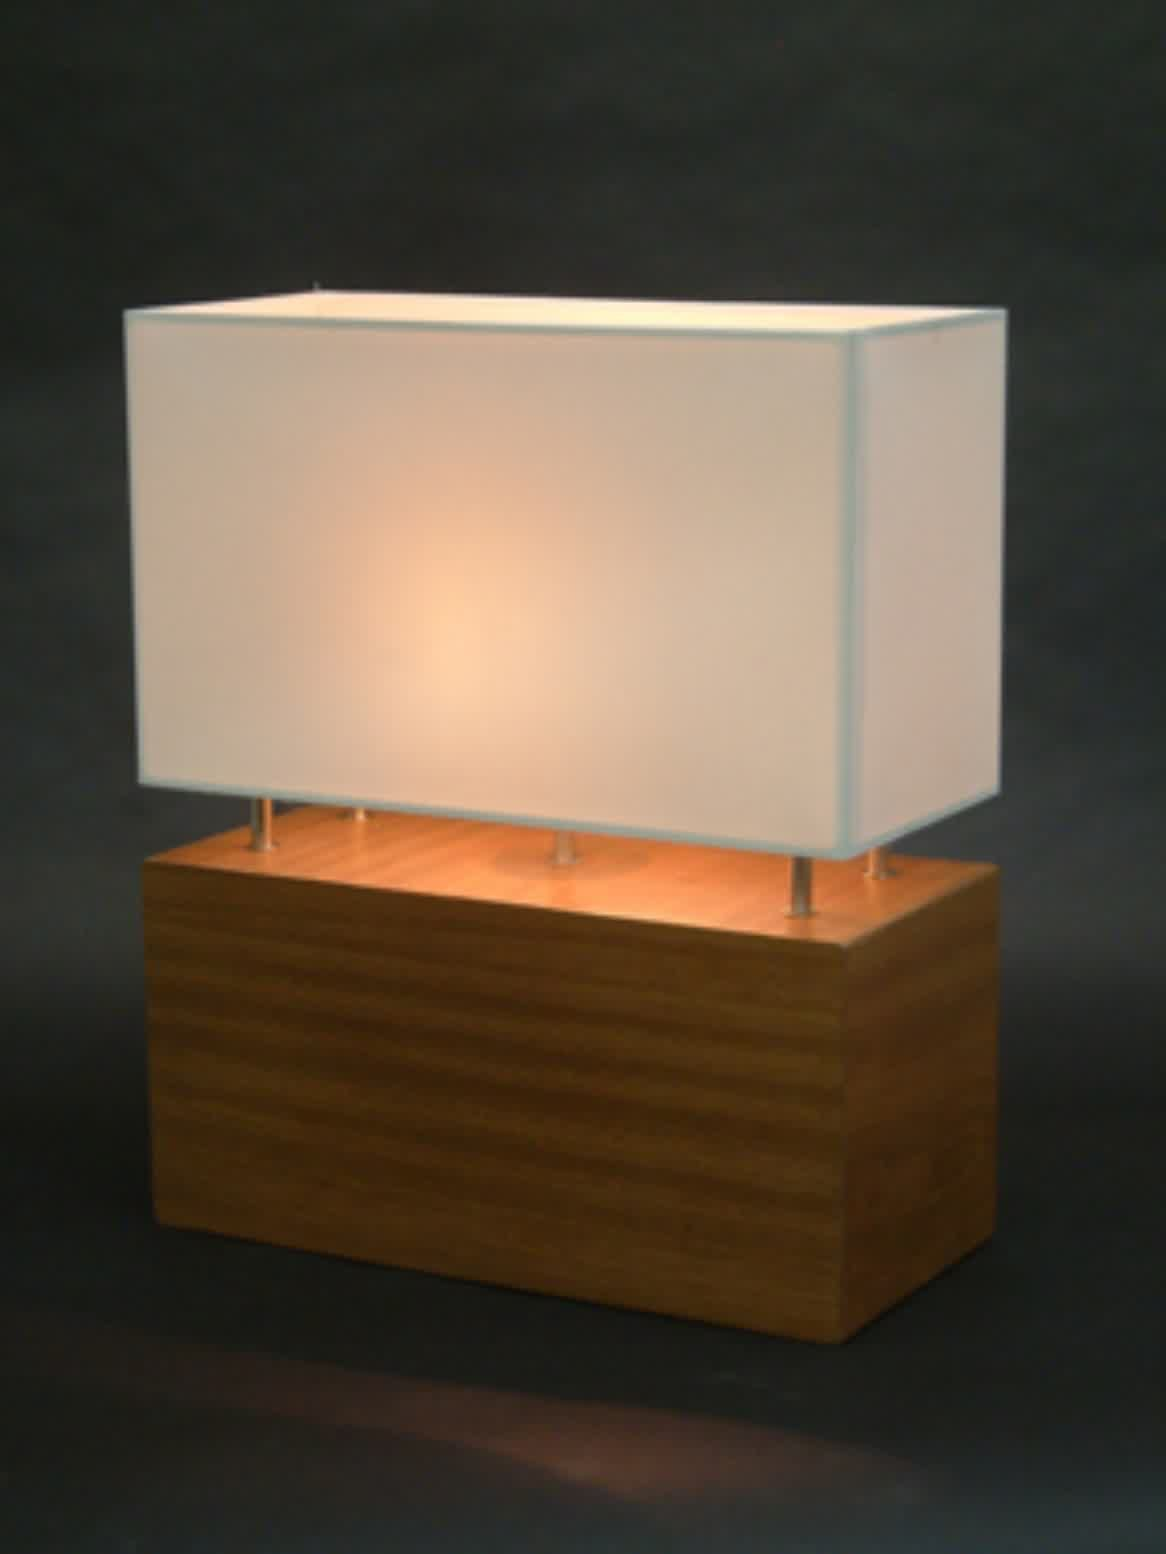 Representation Of Rectangle Lamp Shades Design Variants And Images